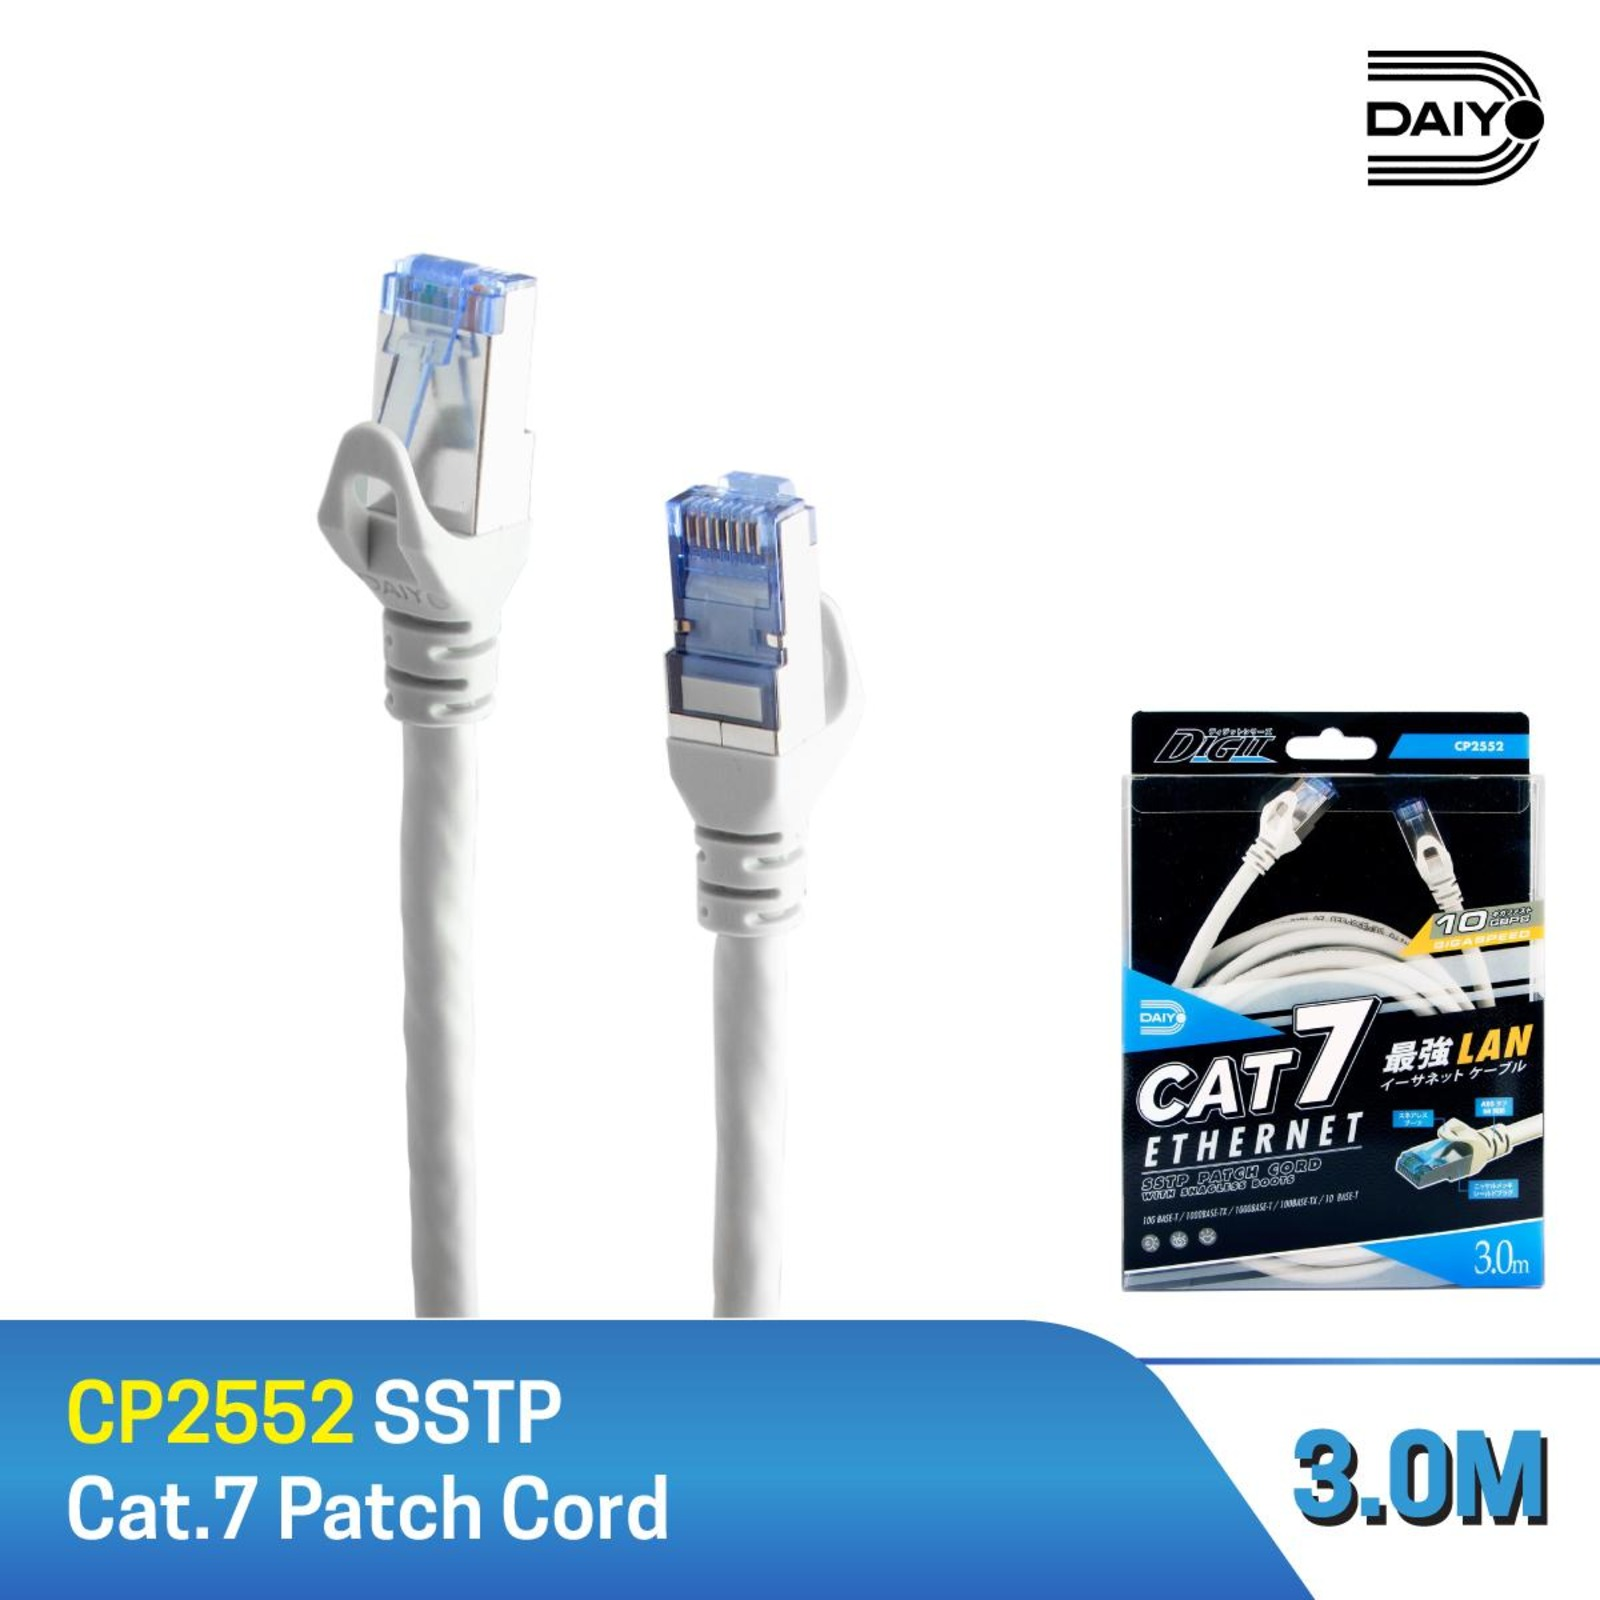 Daiyo SSTP Cat.7 Patch Cord - 3M